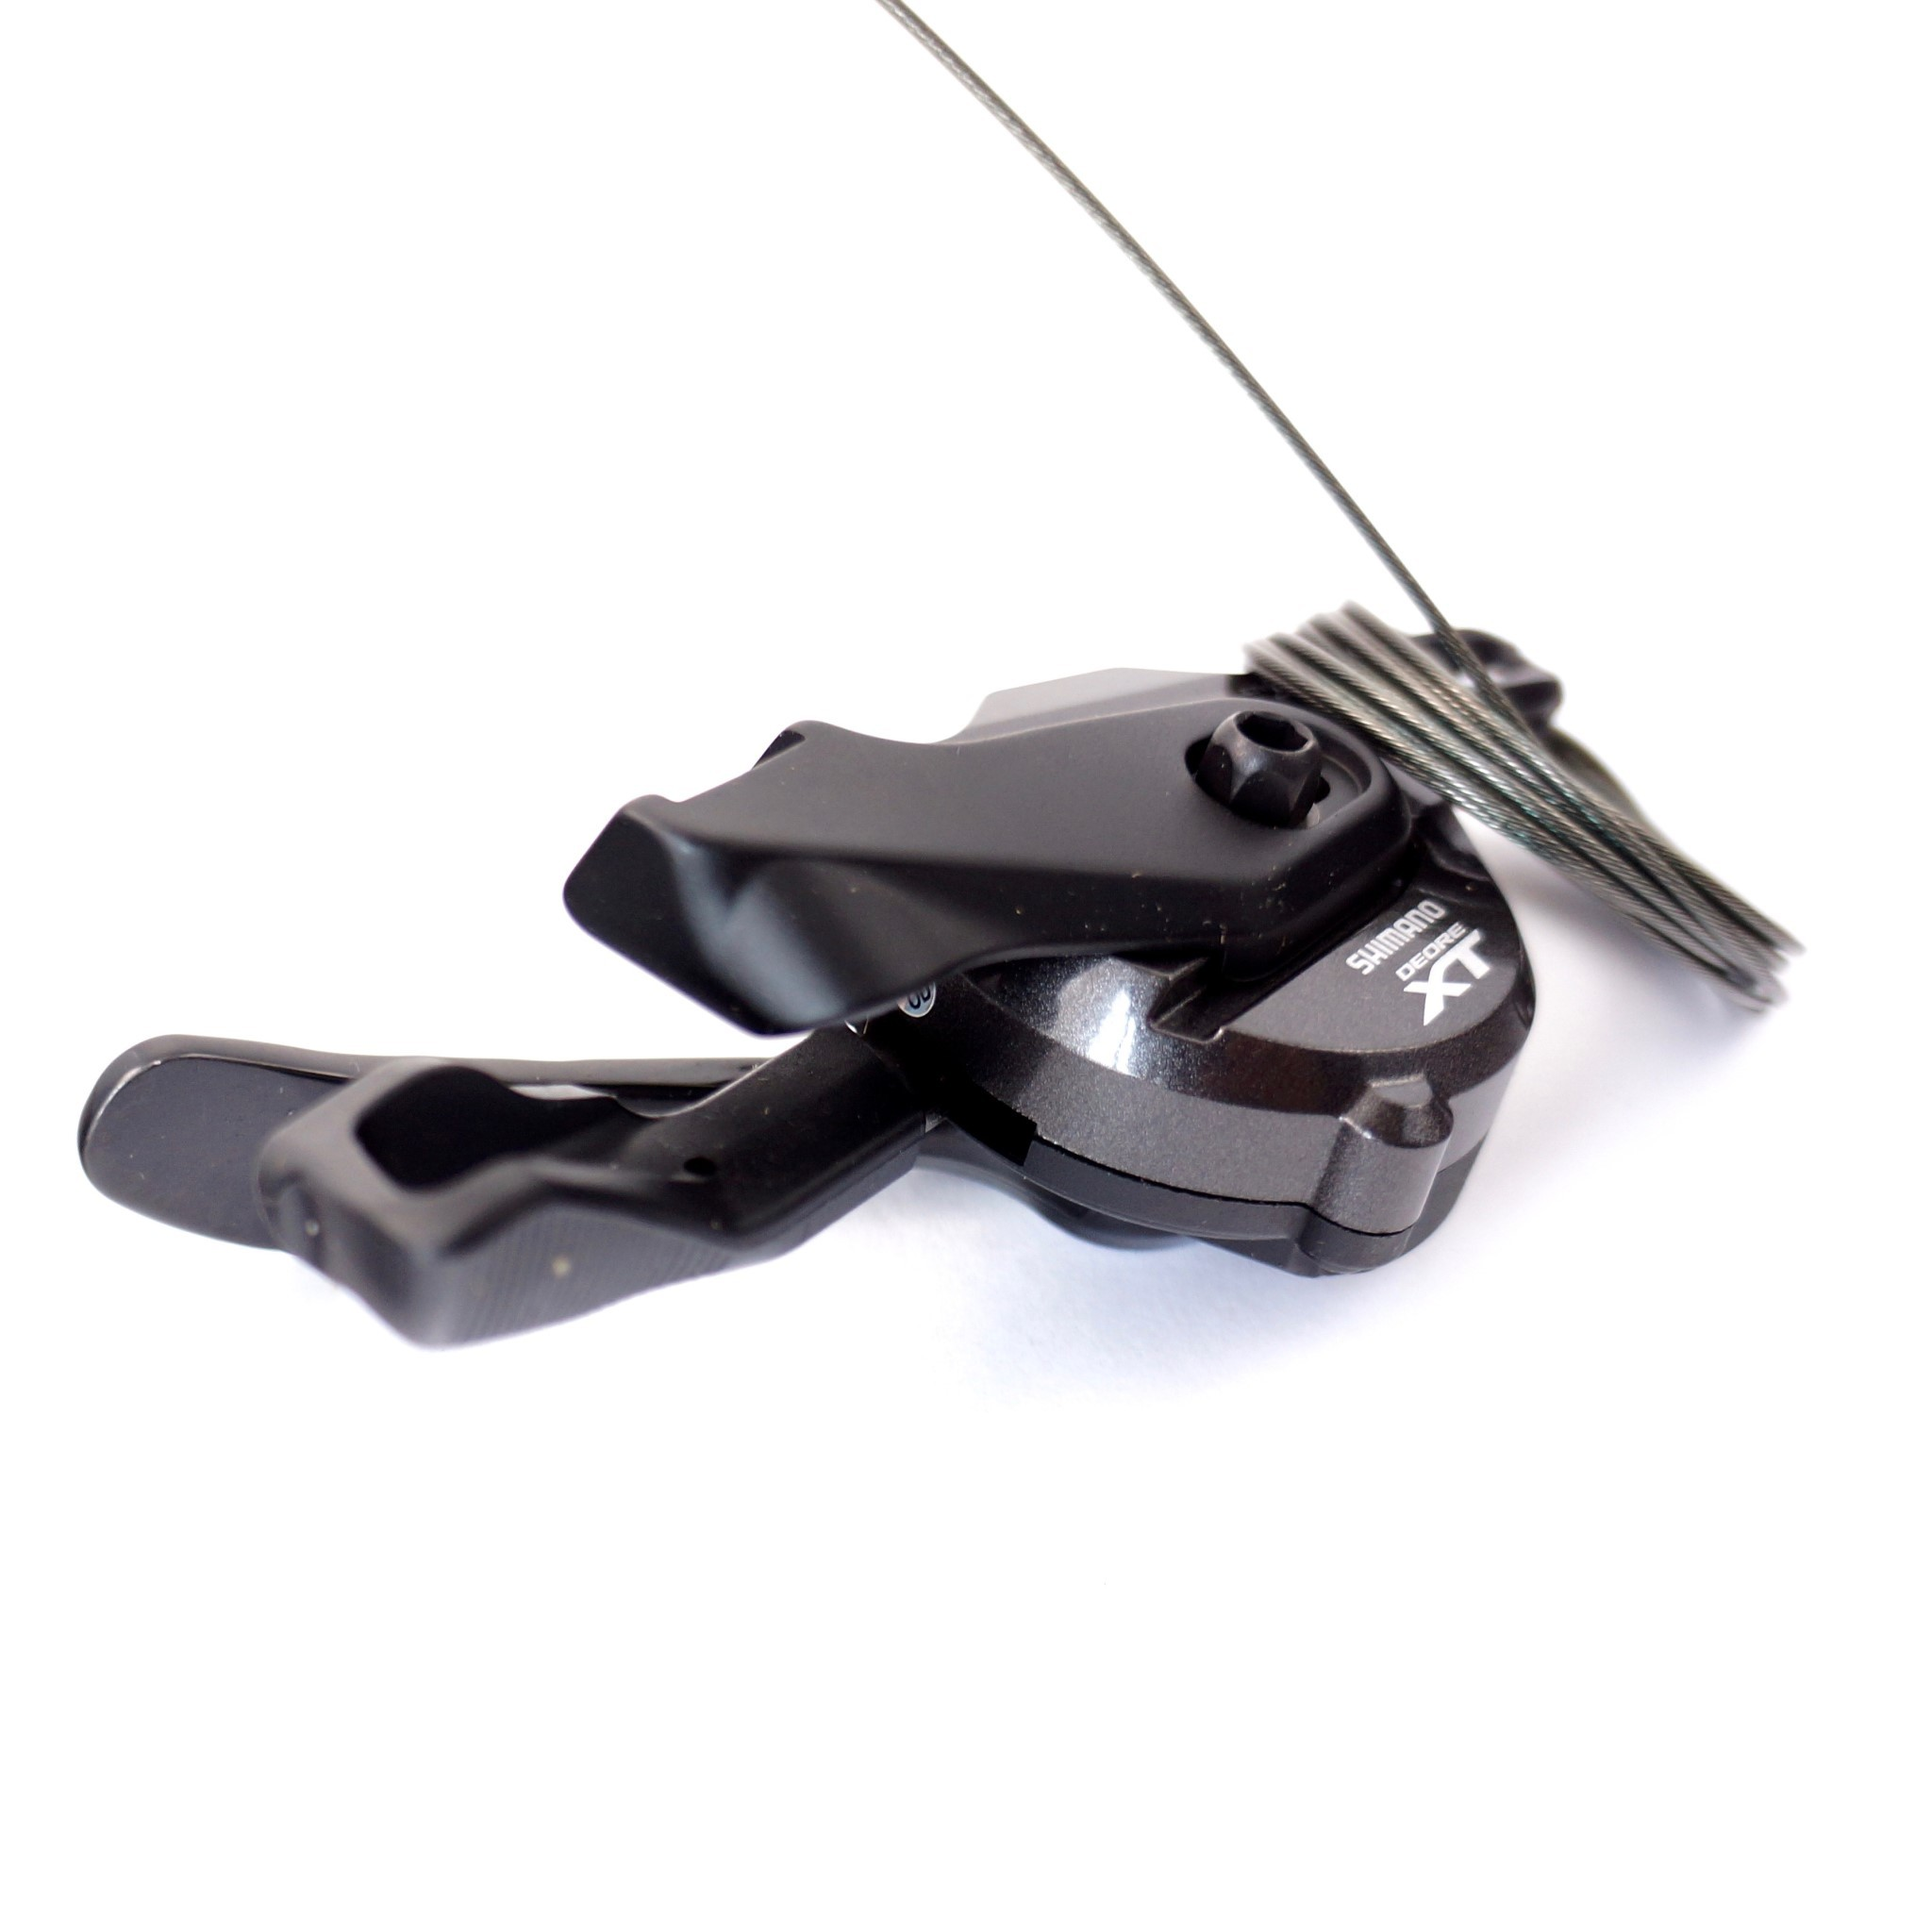 036d9d6ebb3 Details about Shimano Deore XT SL-M8000 I-Spec B Right Shifter 11s For MTB  W/O Mounting Bolts